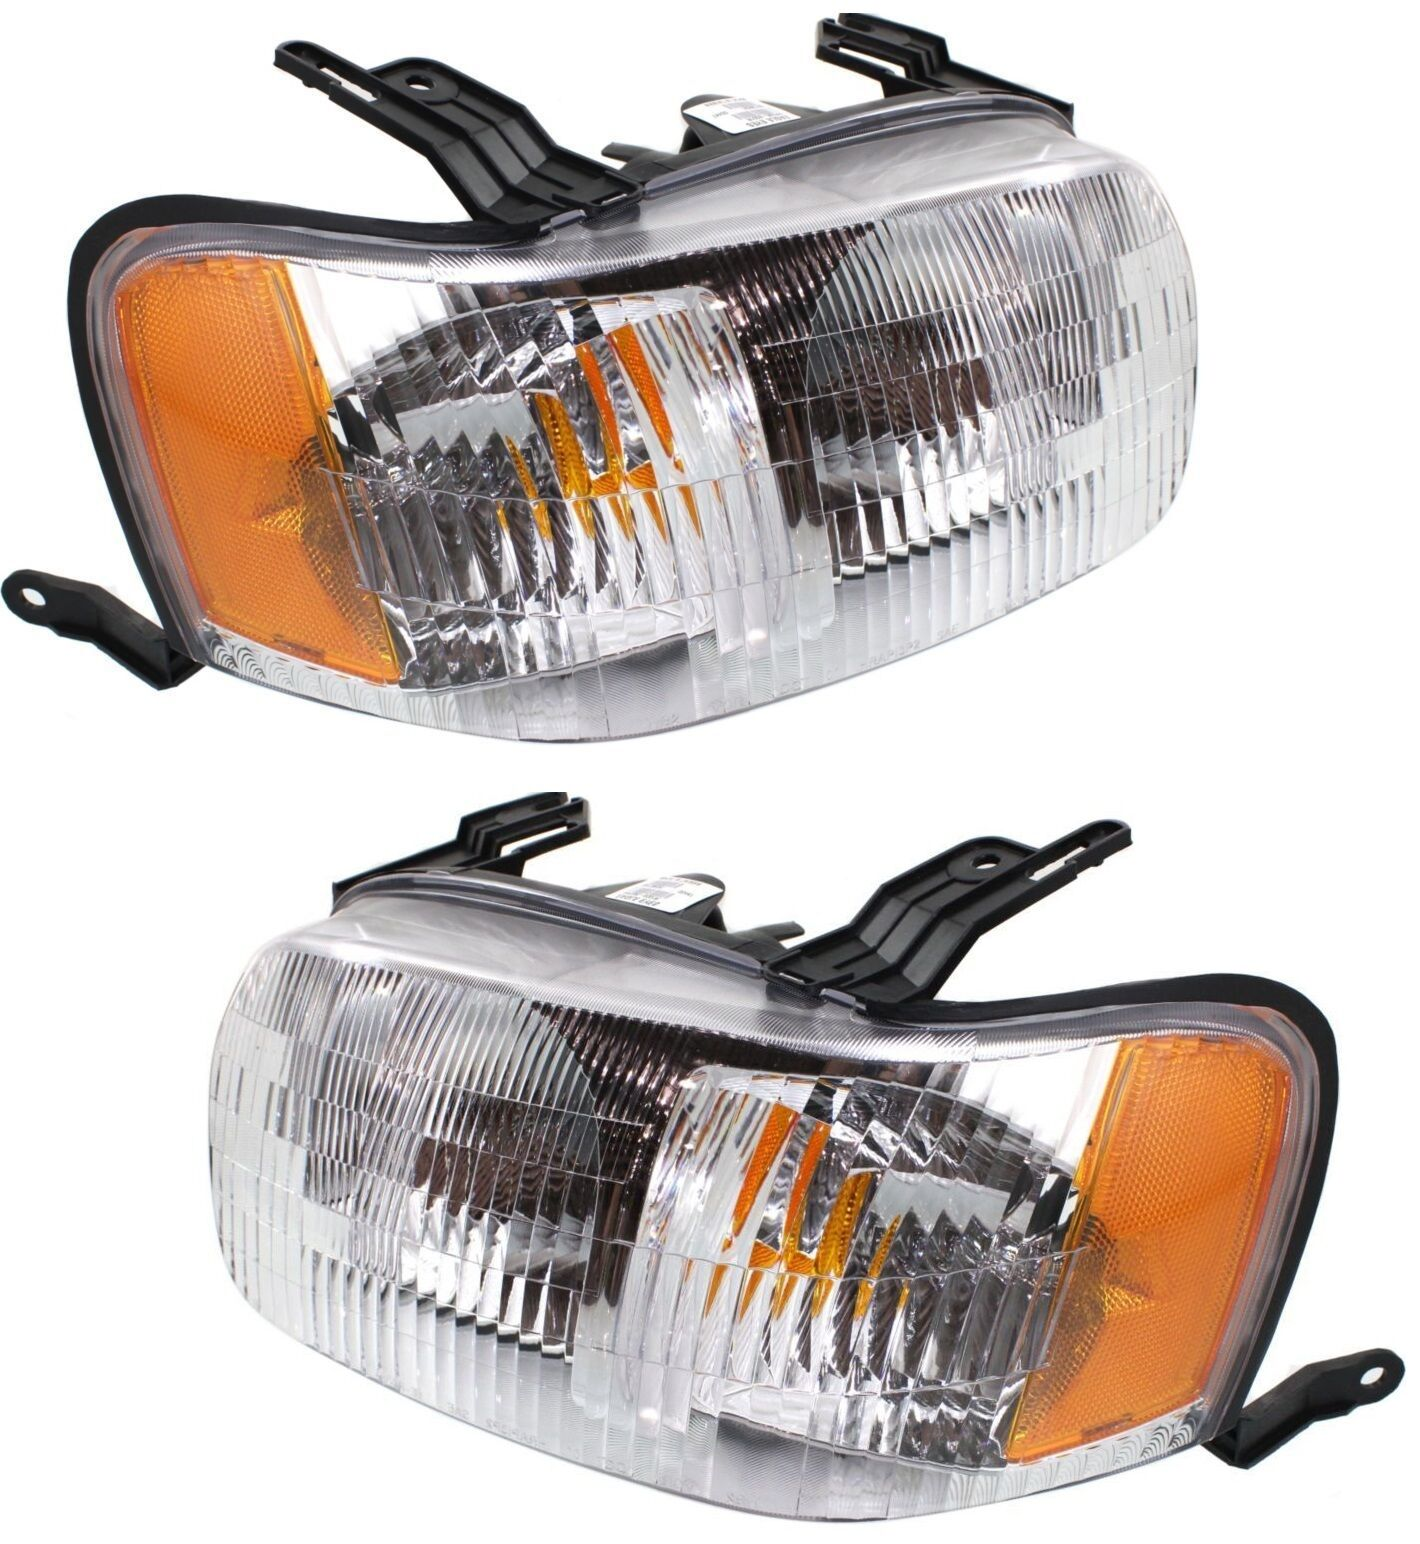 2001 2002 2003 2004 Ford Escape Head Lights Lamp Left & Right Pair Set 2Pcs  1 of 3FREE Shipping 2001 2002 2003 2004 Ford Escape Head Lights ...